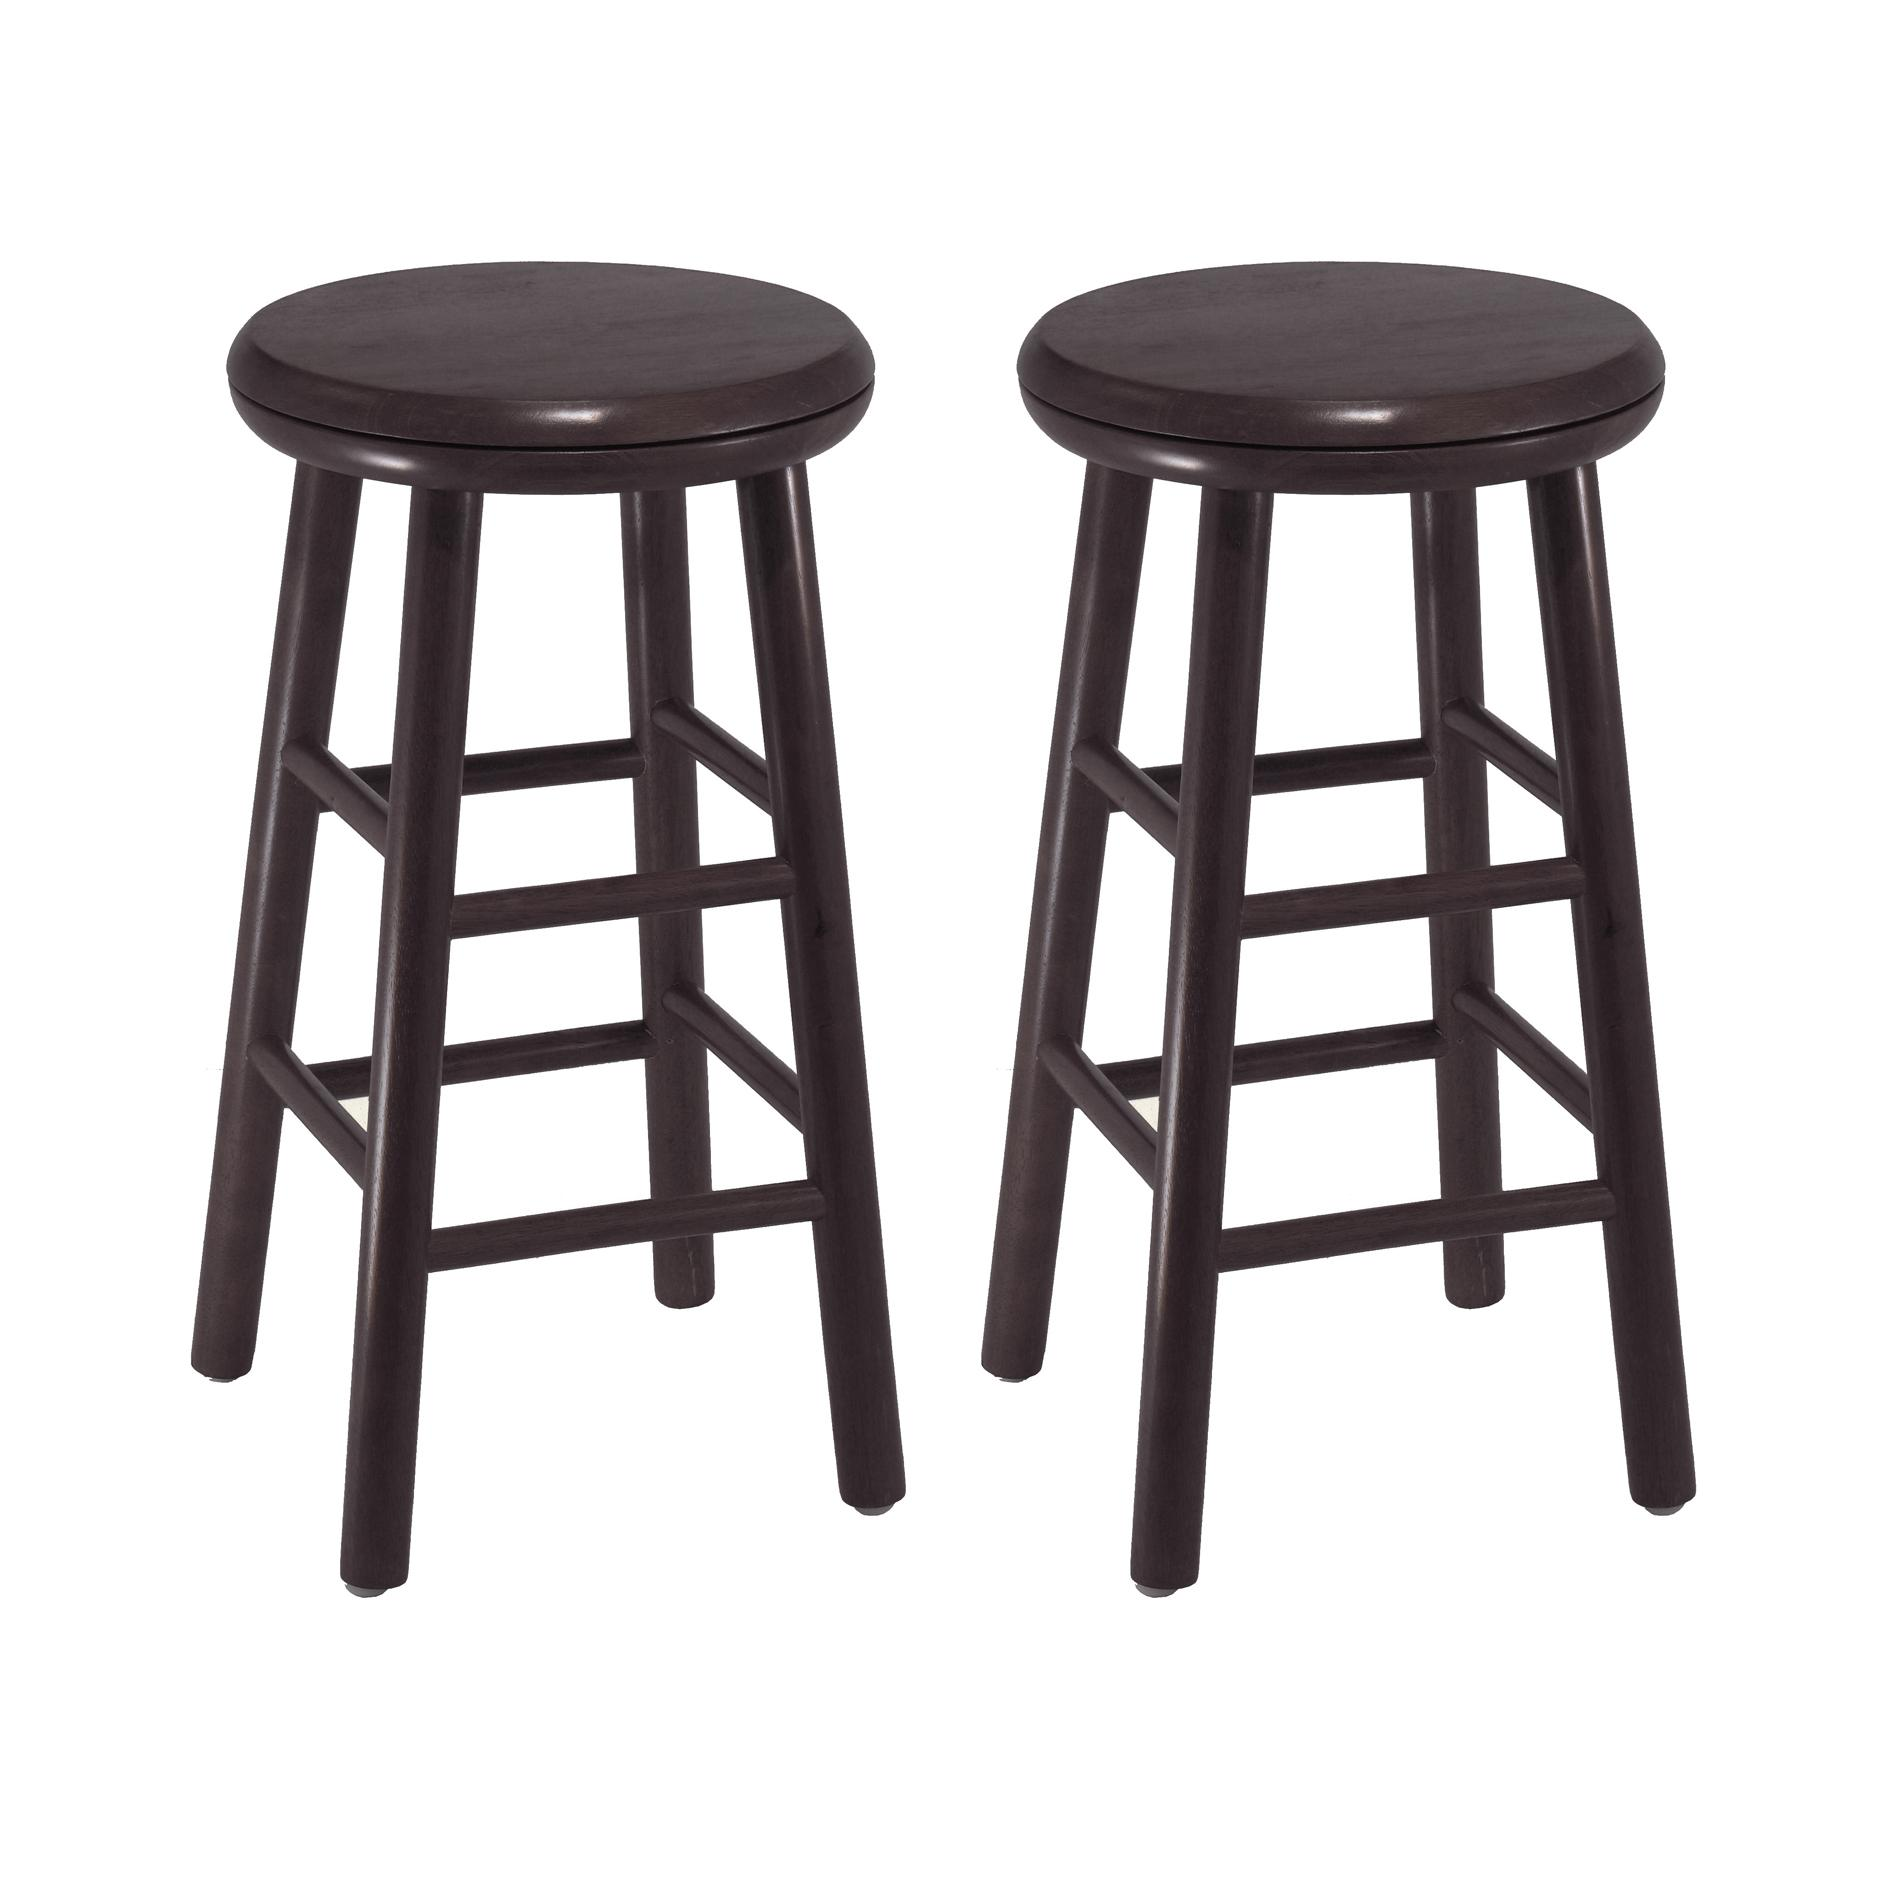 View larger  sc 1 st  Amazon.com & Amazon.com: Winsome Wood 24-Inch Swivel Bar Stools Dark Espresso ... islam-shia.org